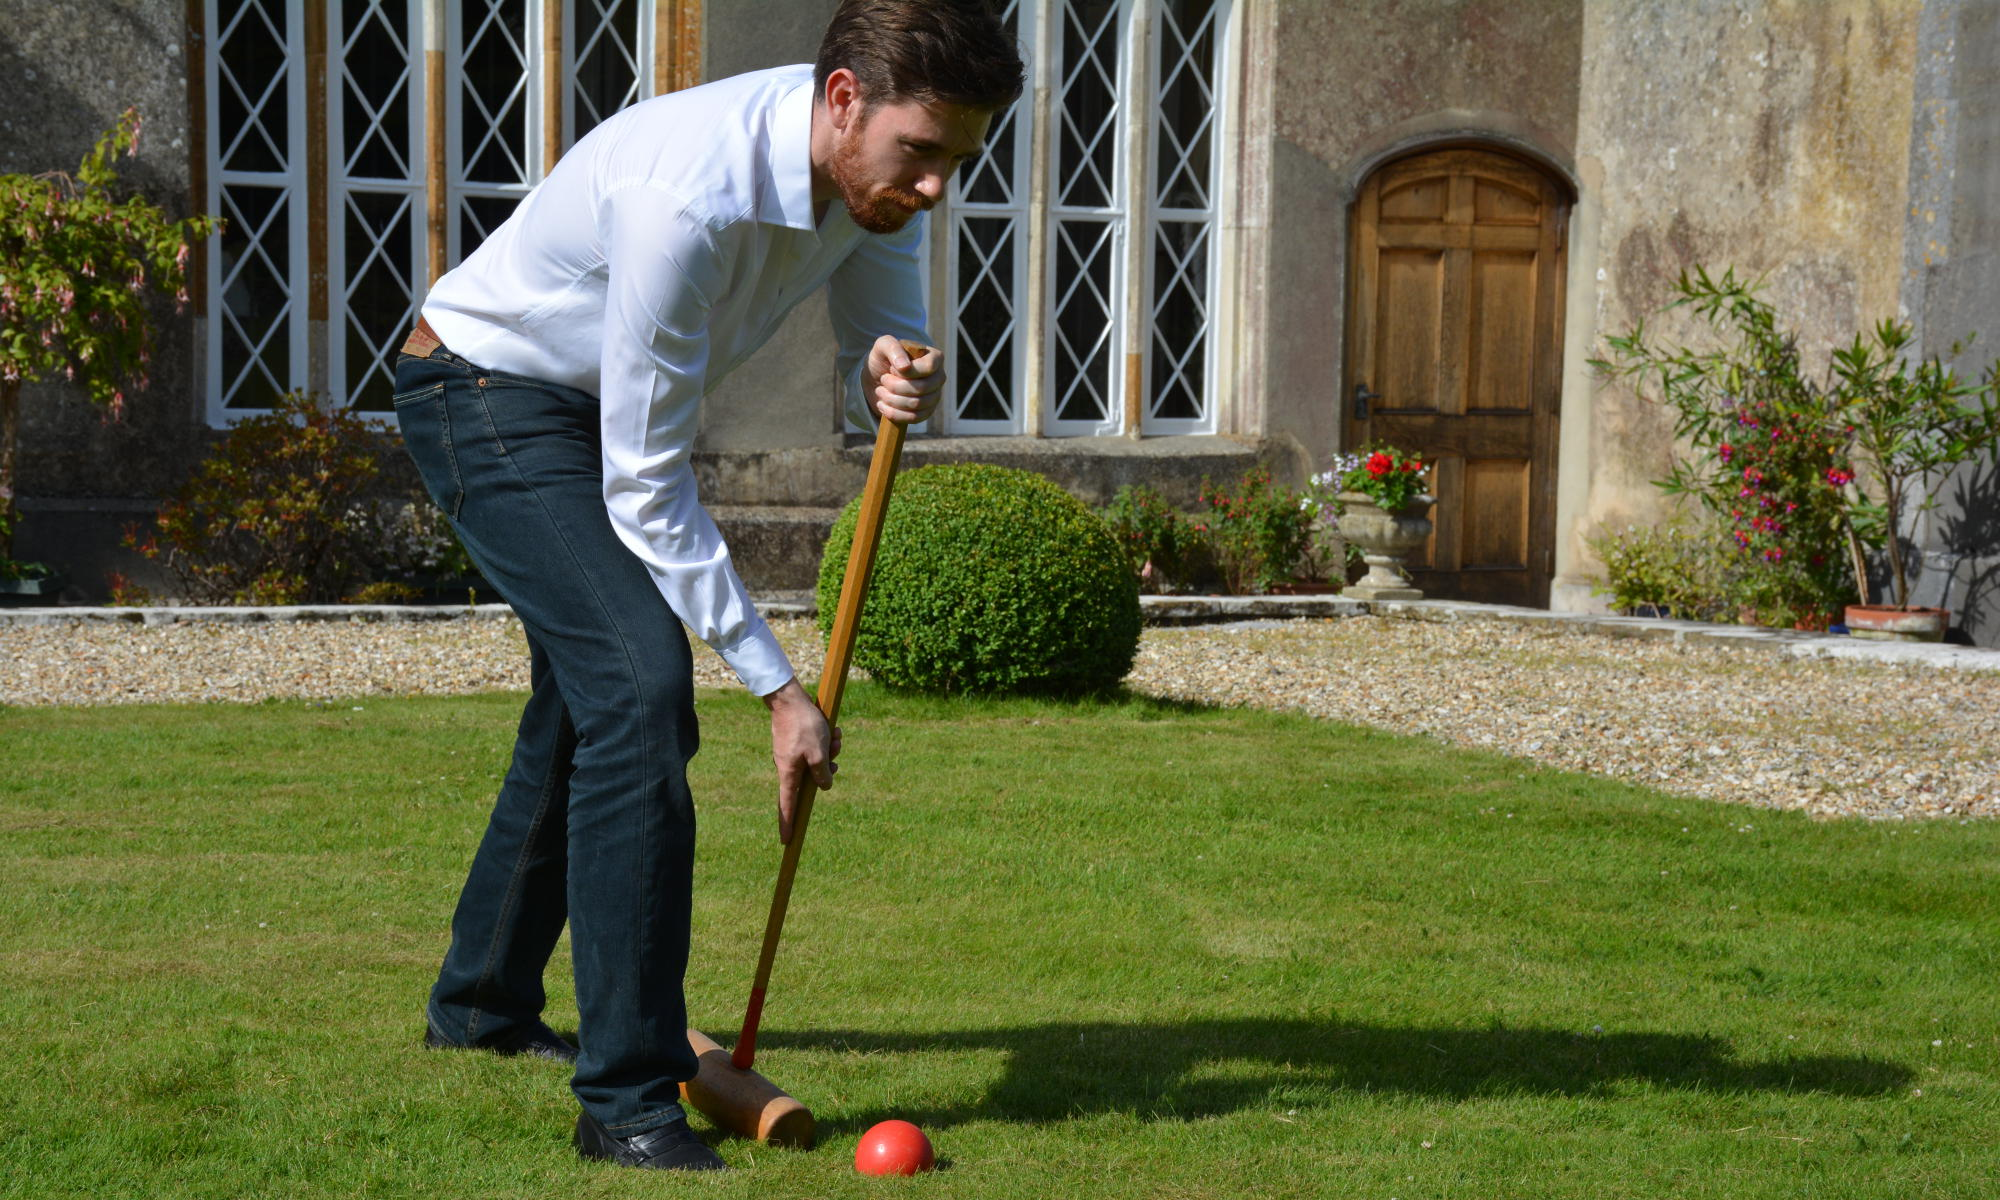 Buchanan & Wilmot - Croquet on the lawn - British made luxury cufflinks, gifts for men and women